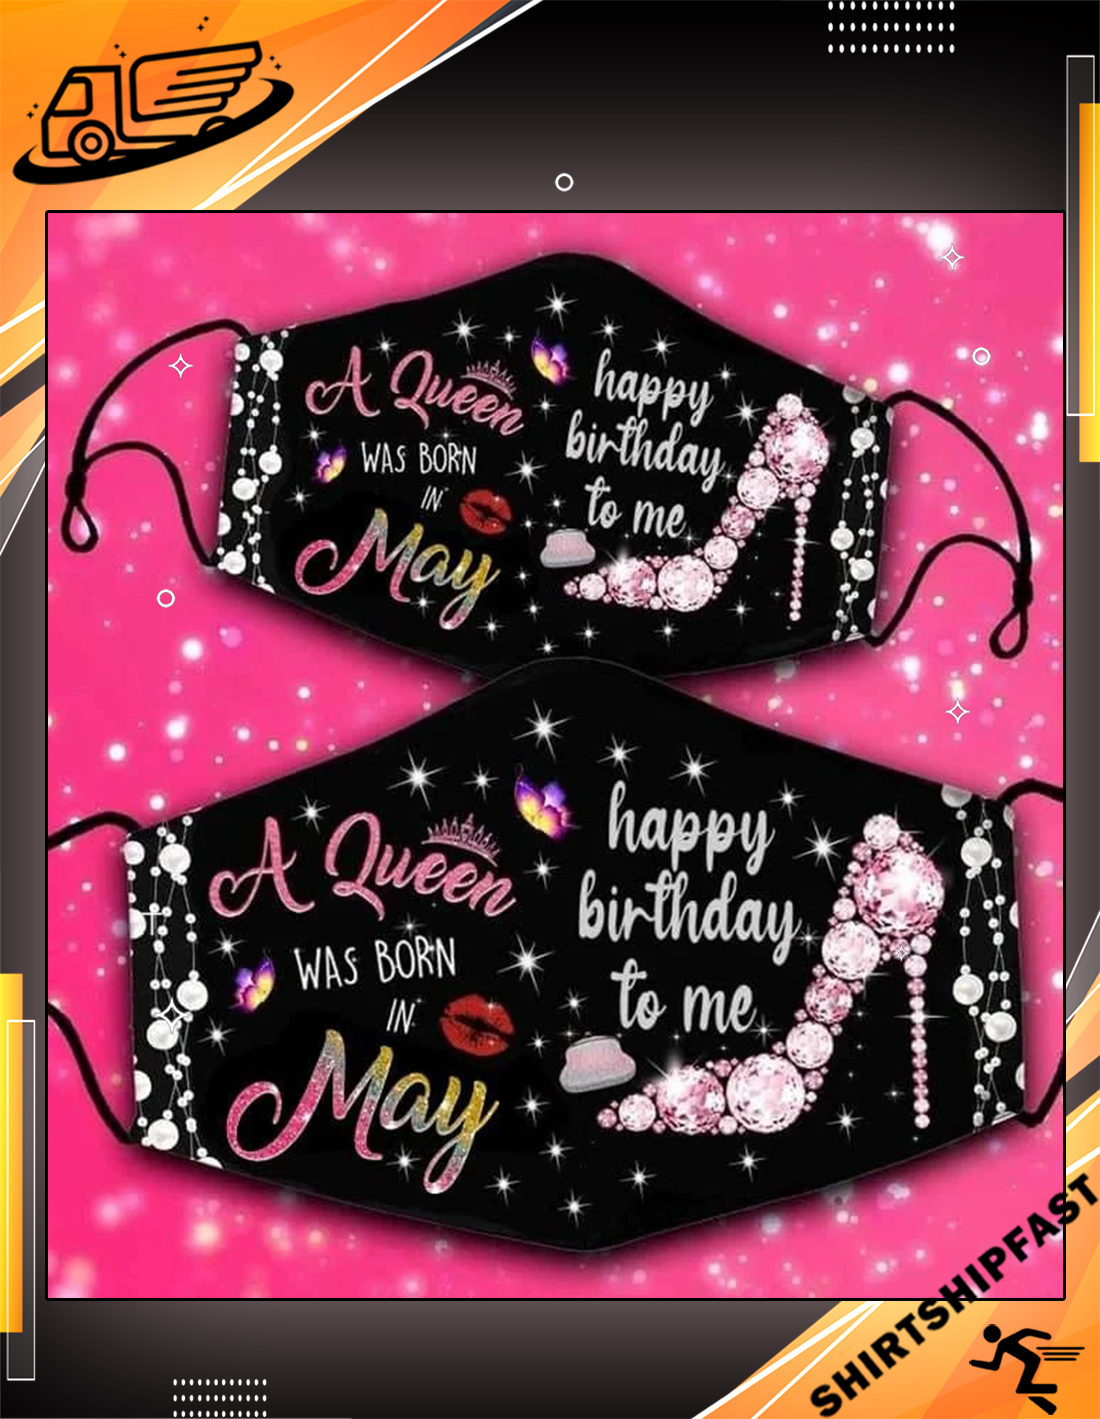 A queen was born in May happy birthday to me face mask - Picture 3